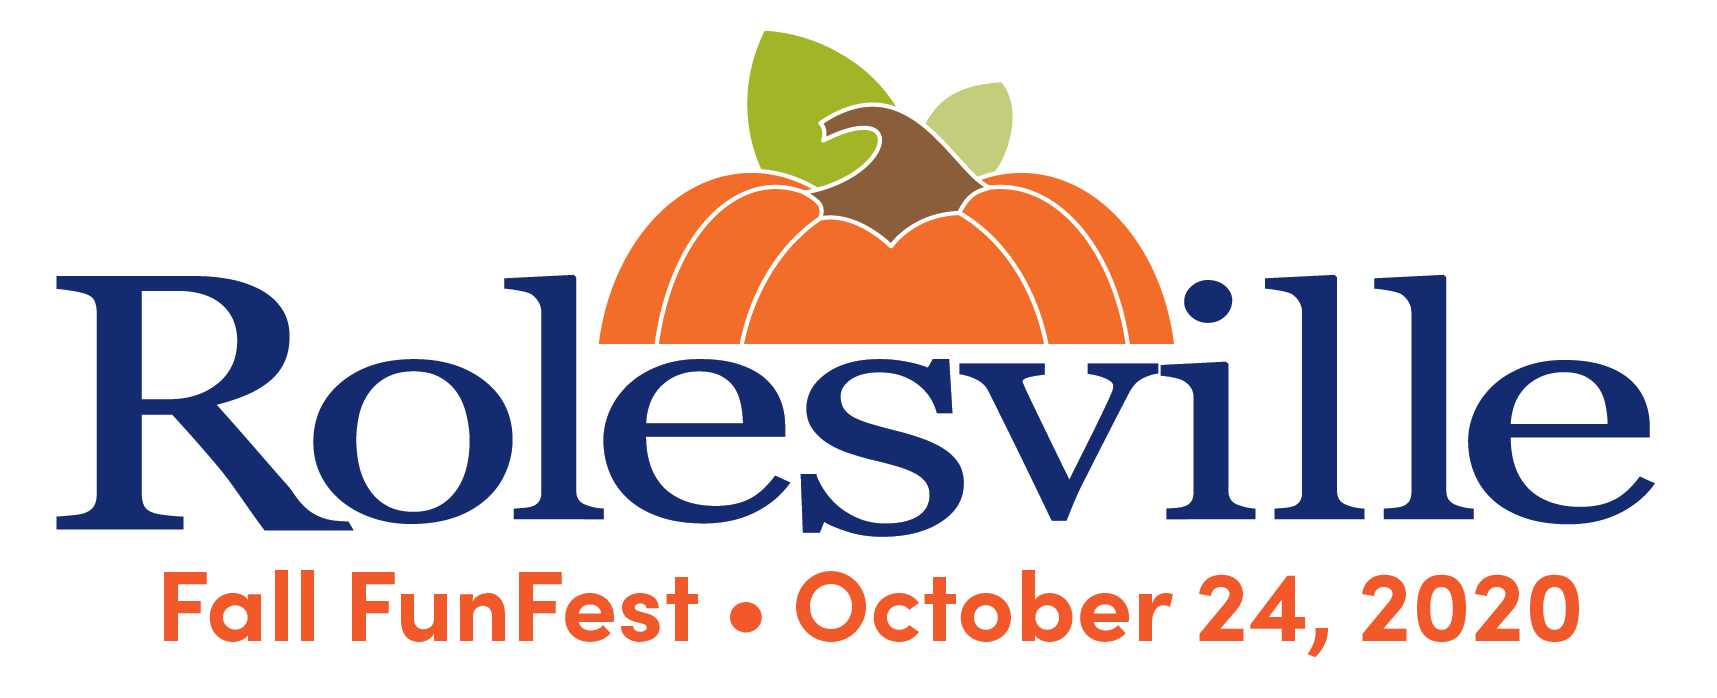 Fall Fun Fest logo